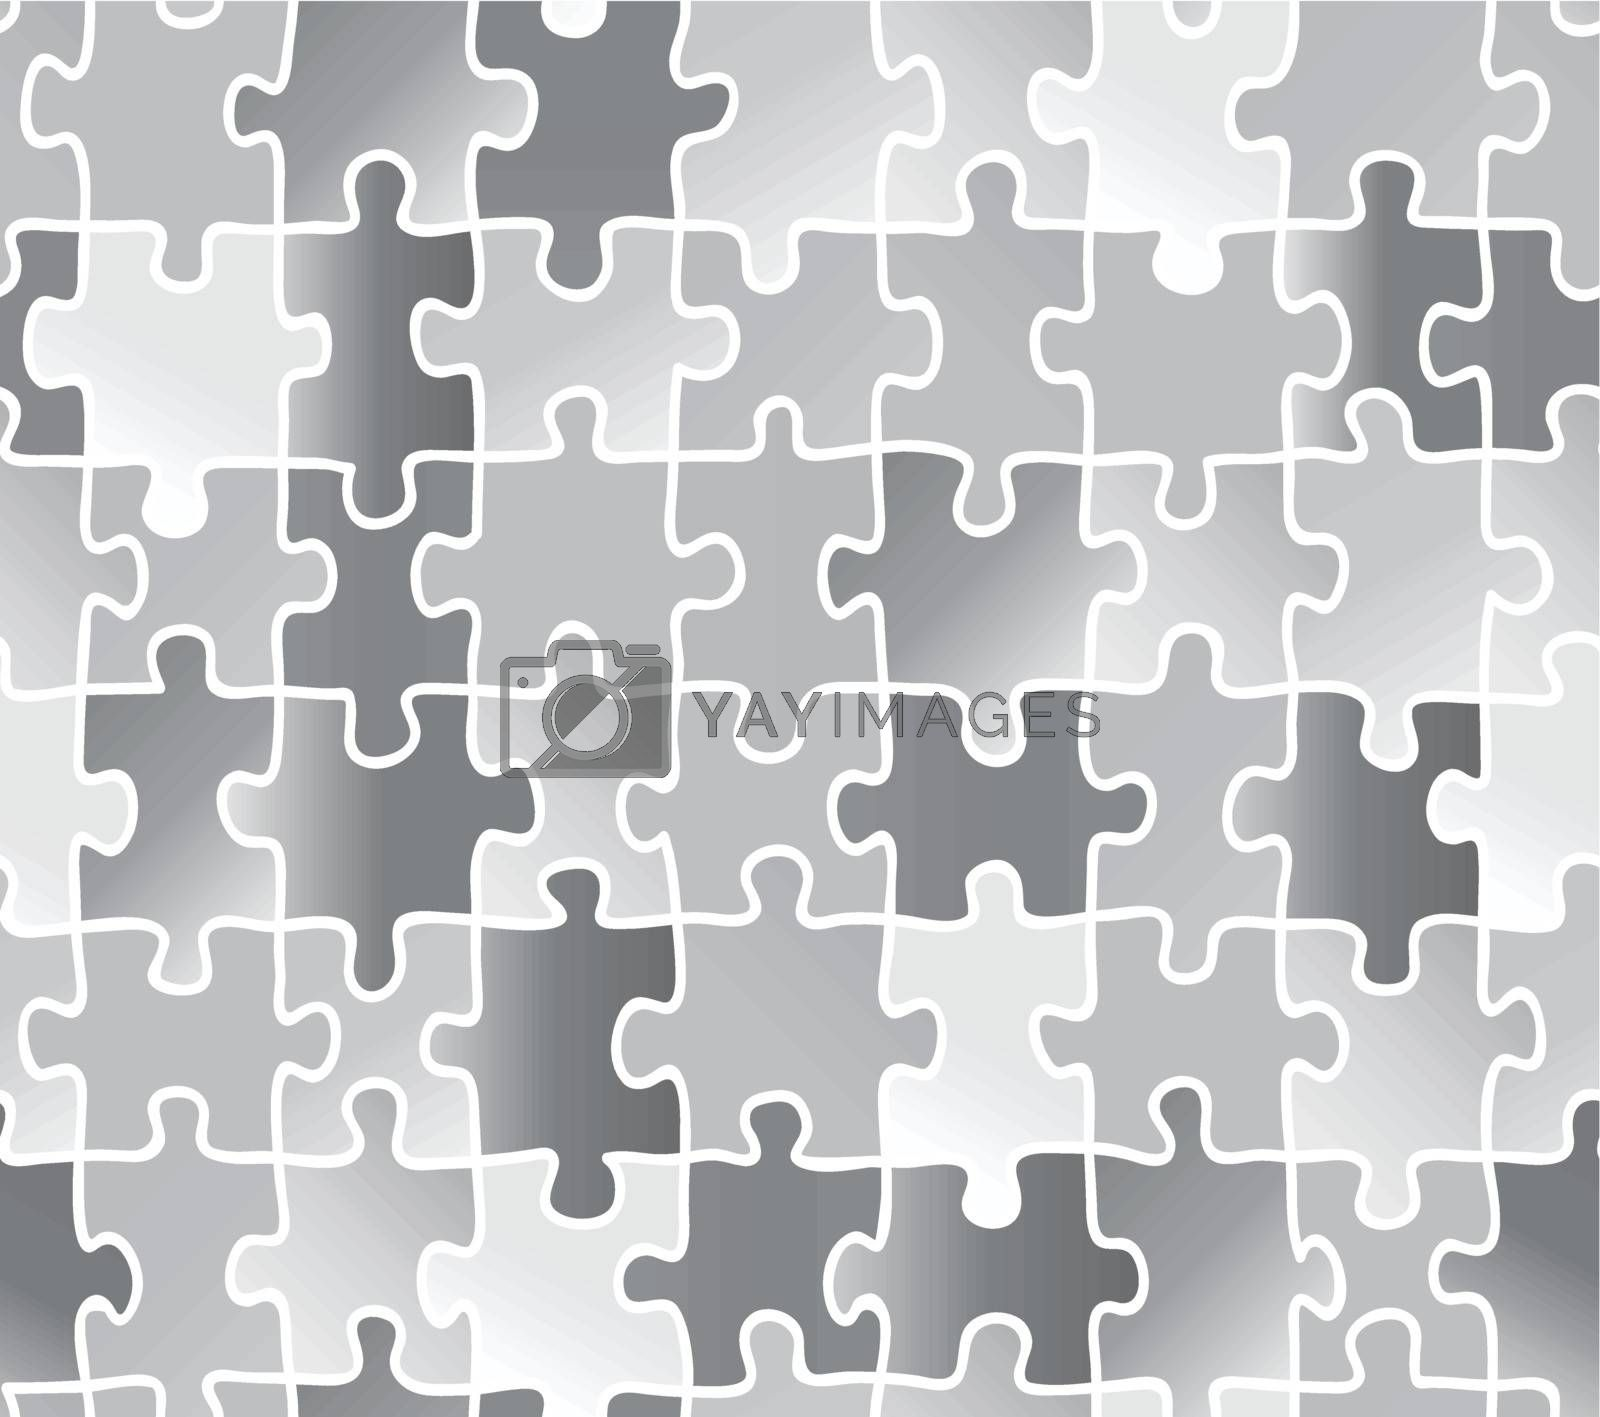 abstract texture puzzle. silver gray color. Use as a fill pattern, backdrop, seamless texture.